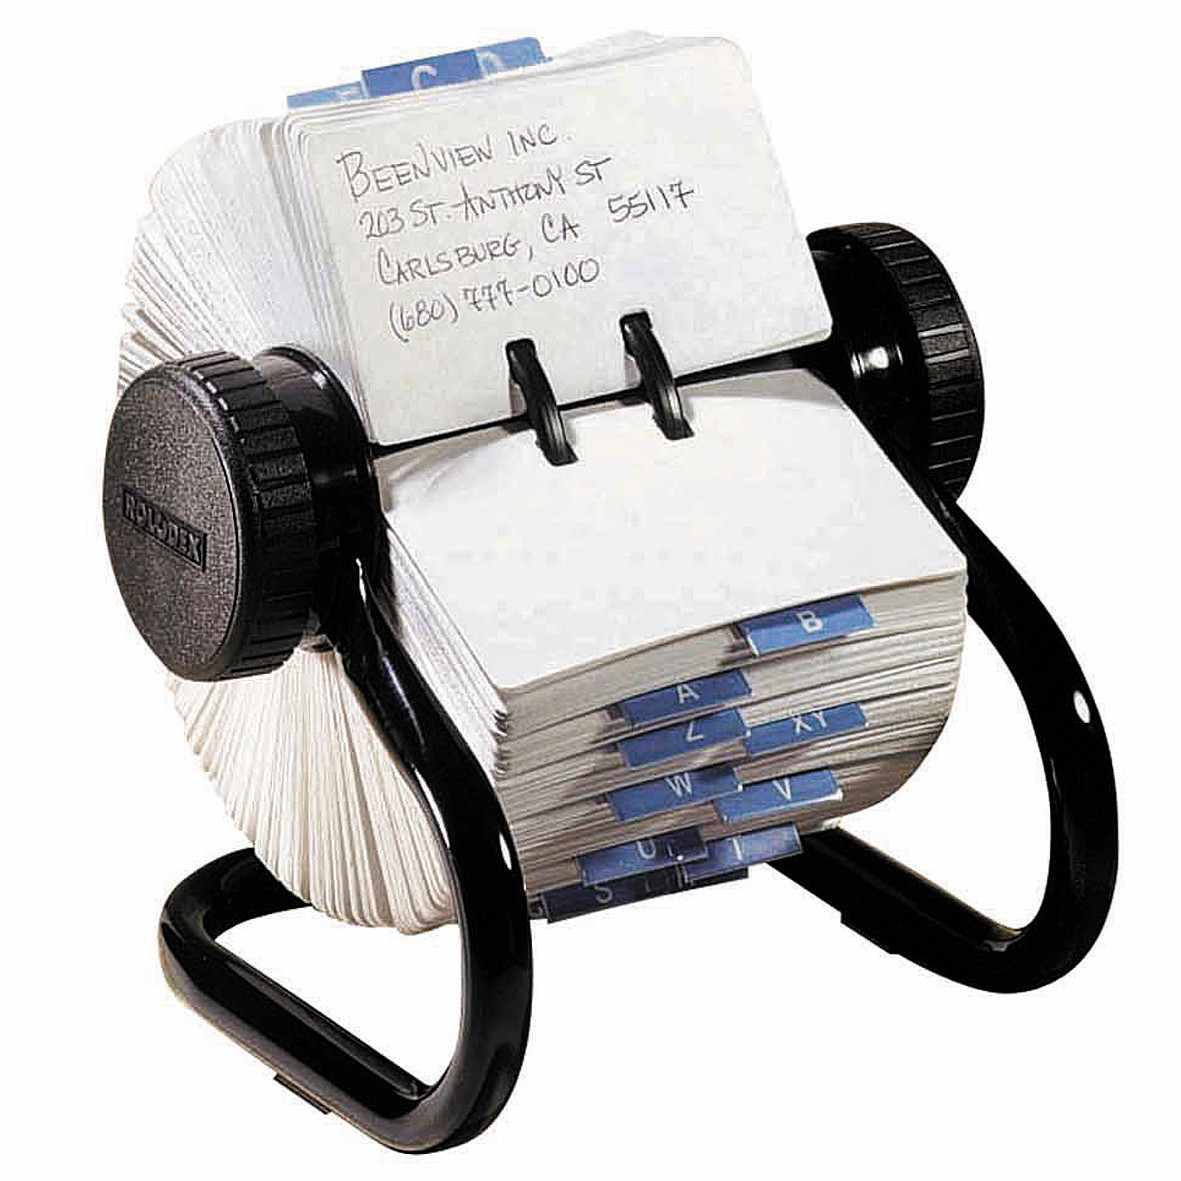 Rullekartotek t/500 kort 57x102 mm Rolodex sort